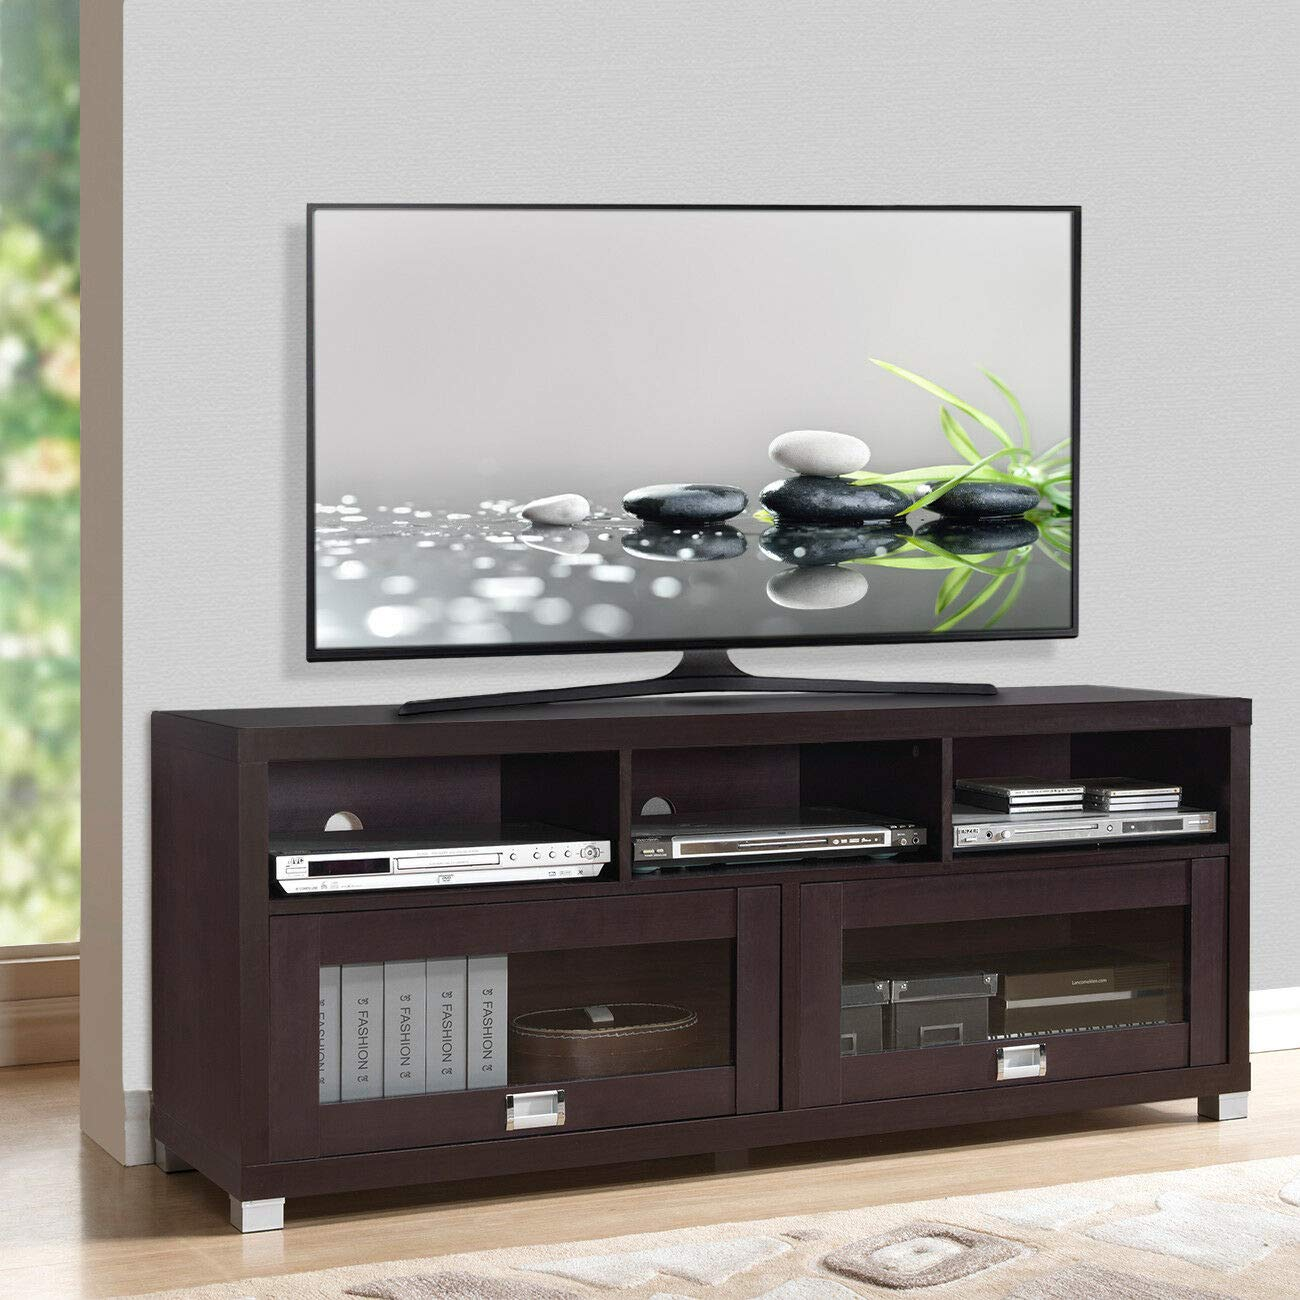 Wood Home Classic TV Stand Home Entertainment Media